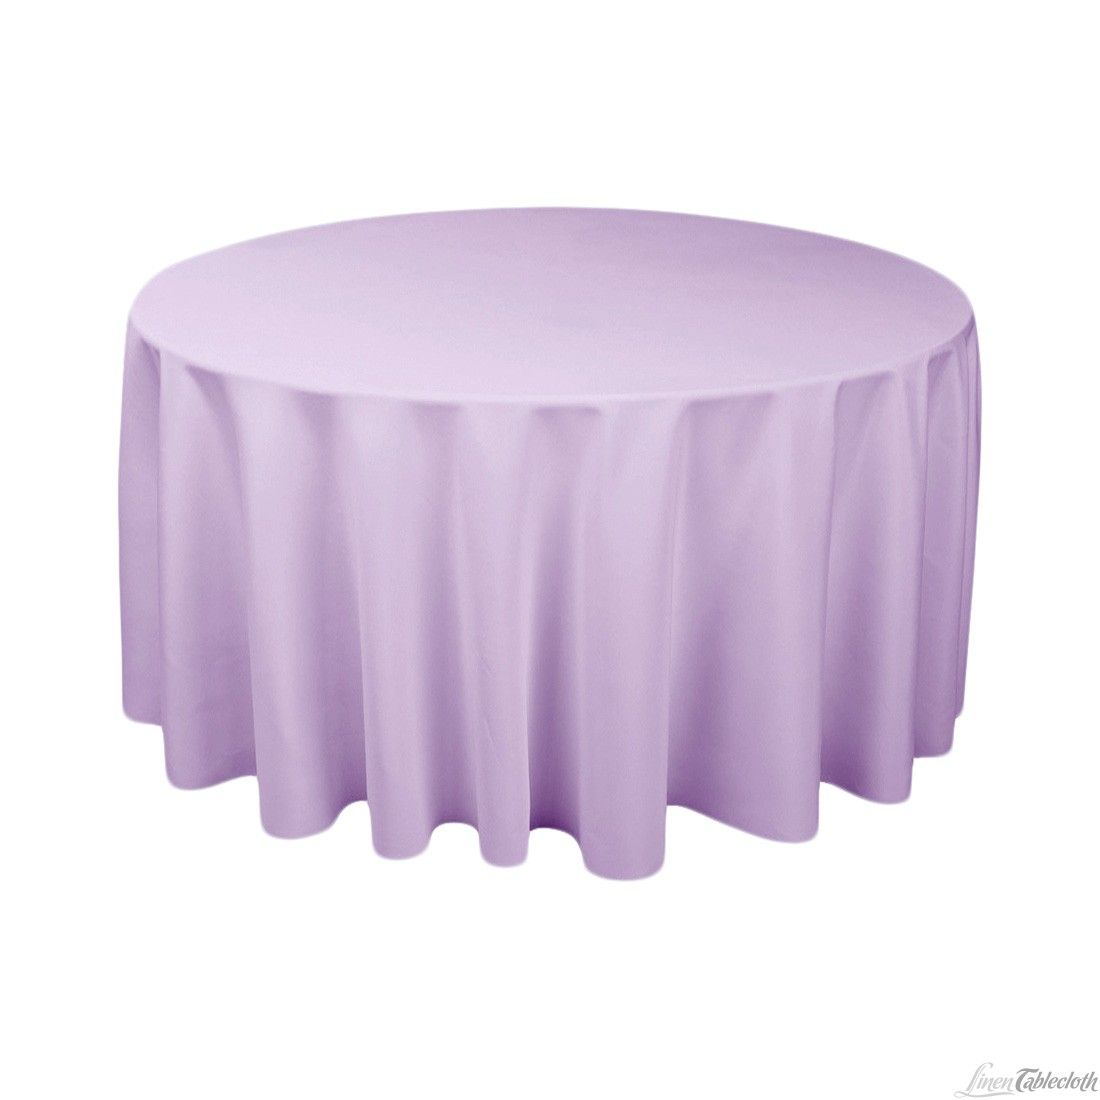 Buy 120 Inch Round Lavender Tablecloth For Weddings At